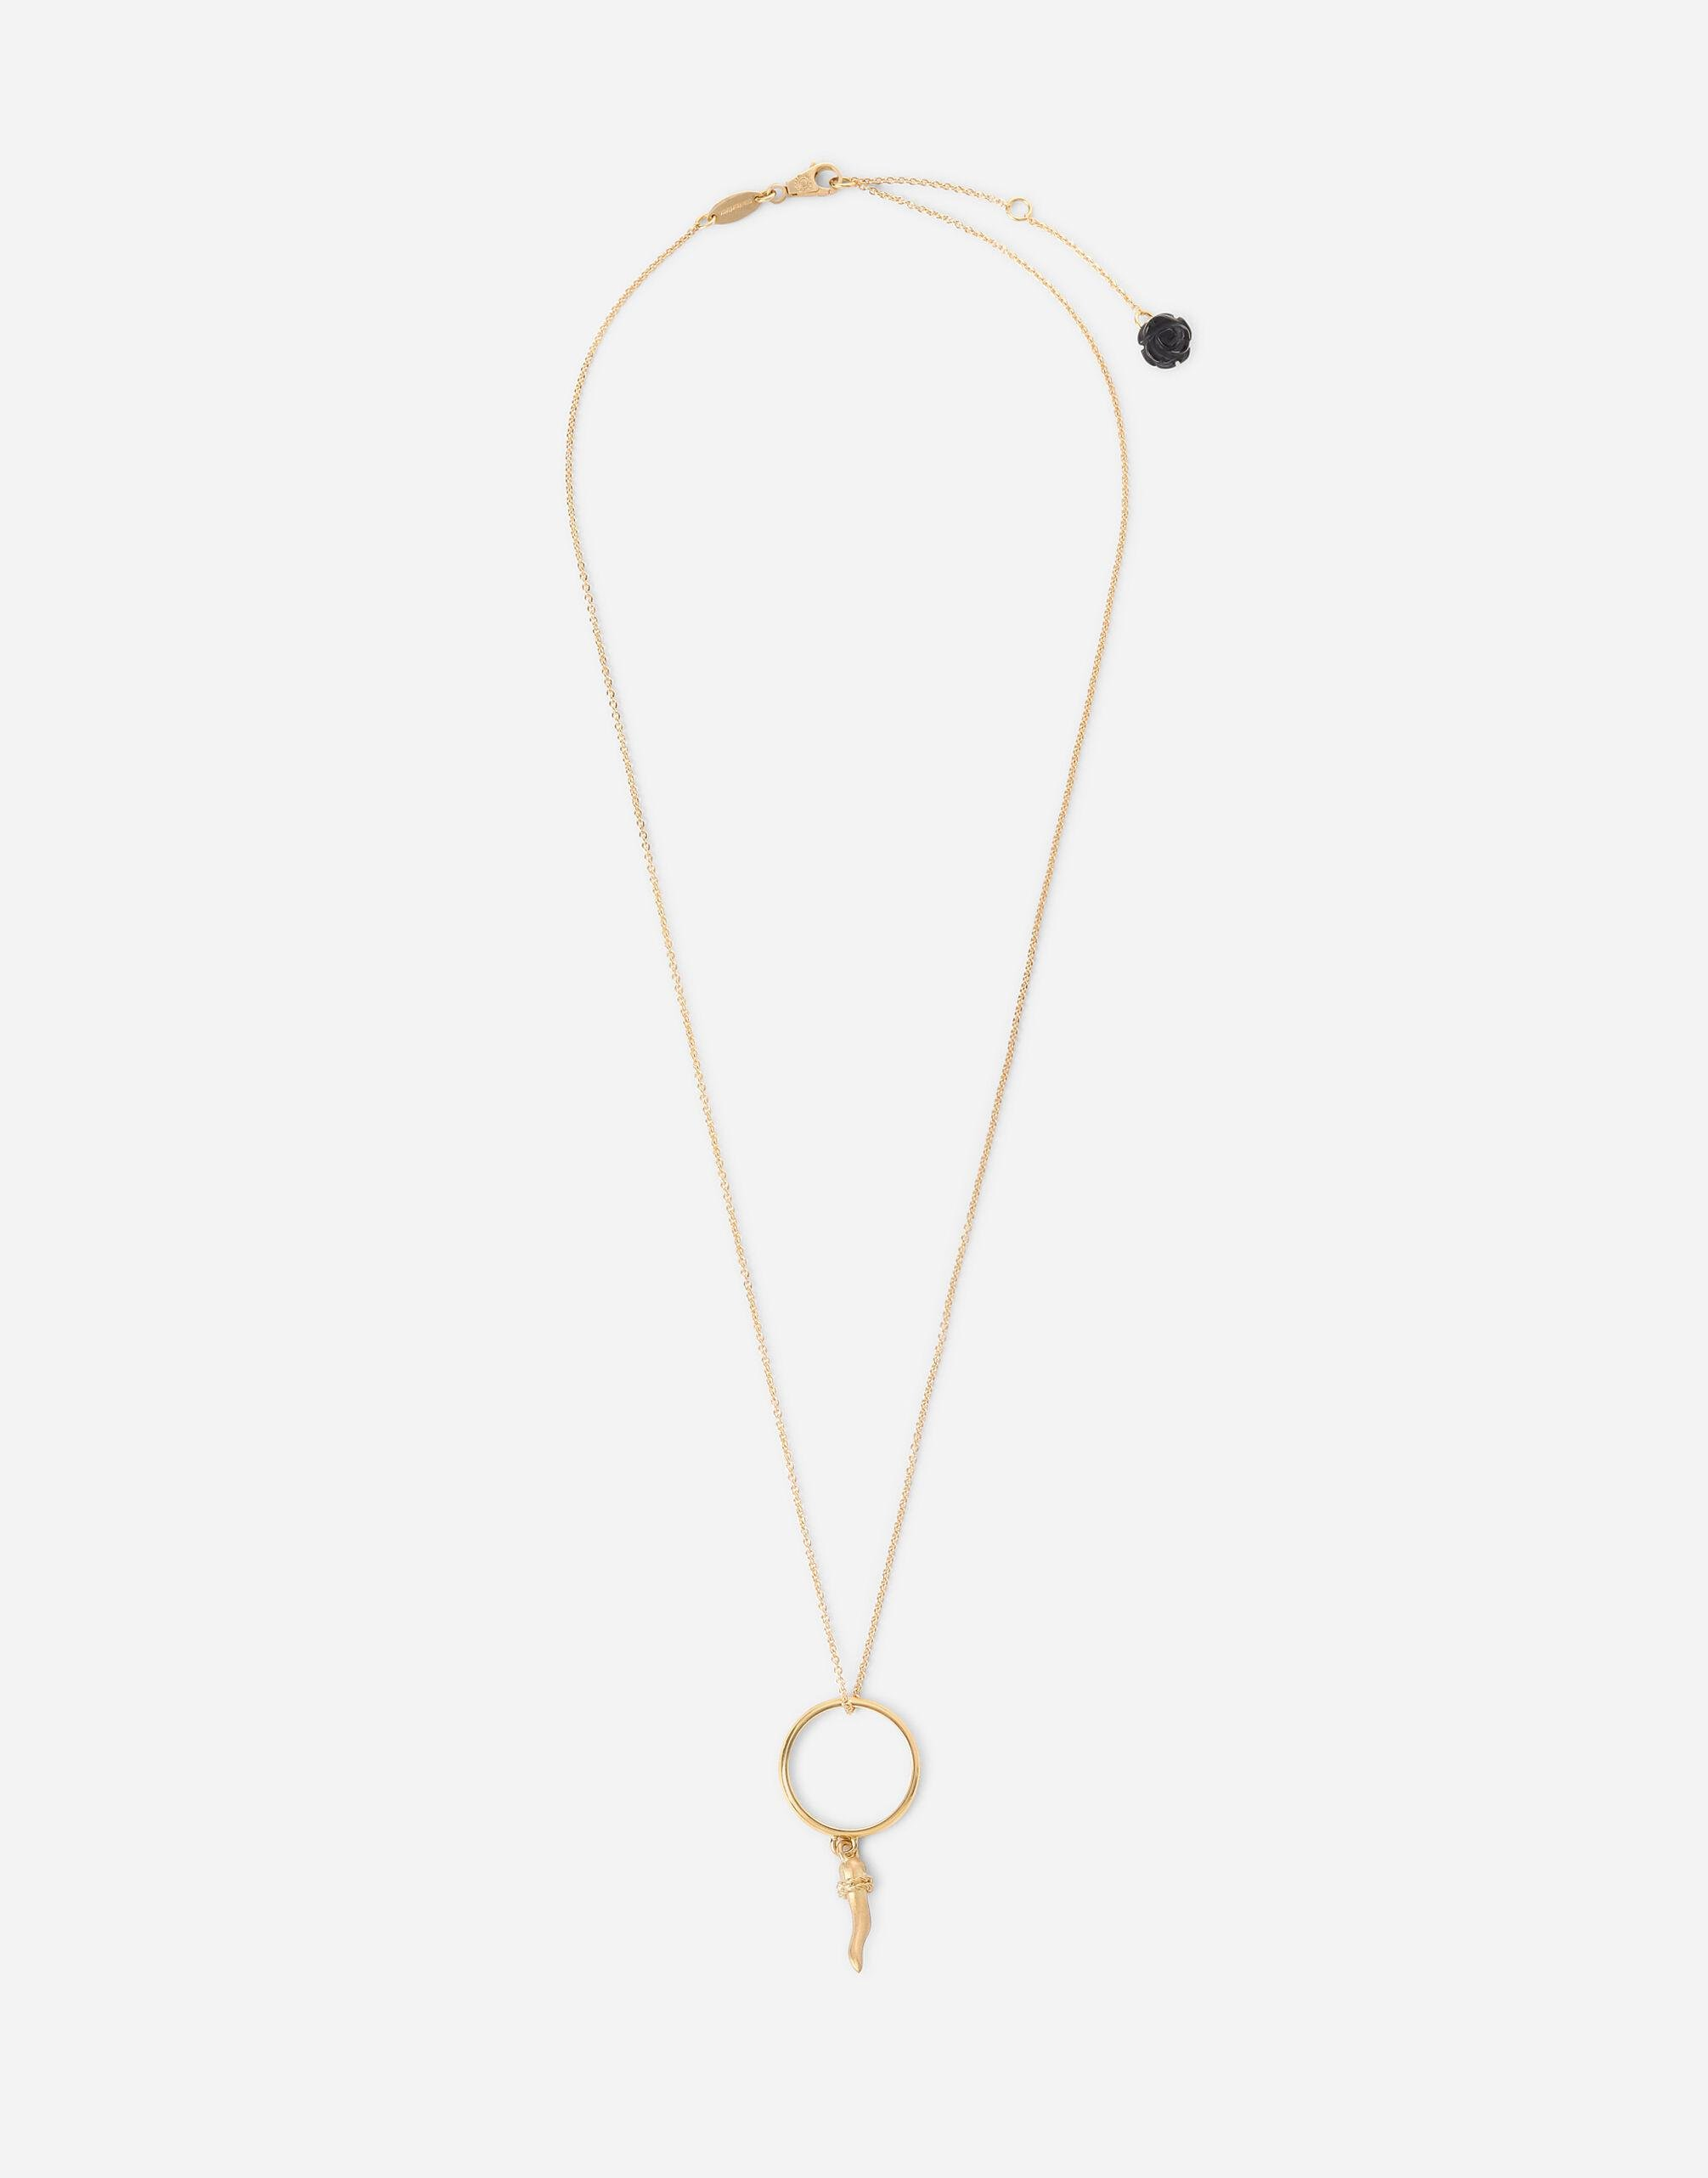 Good Luck pendant in yellow 18kt gold with ring and horn